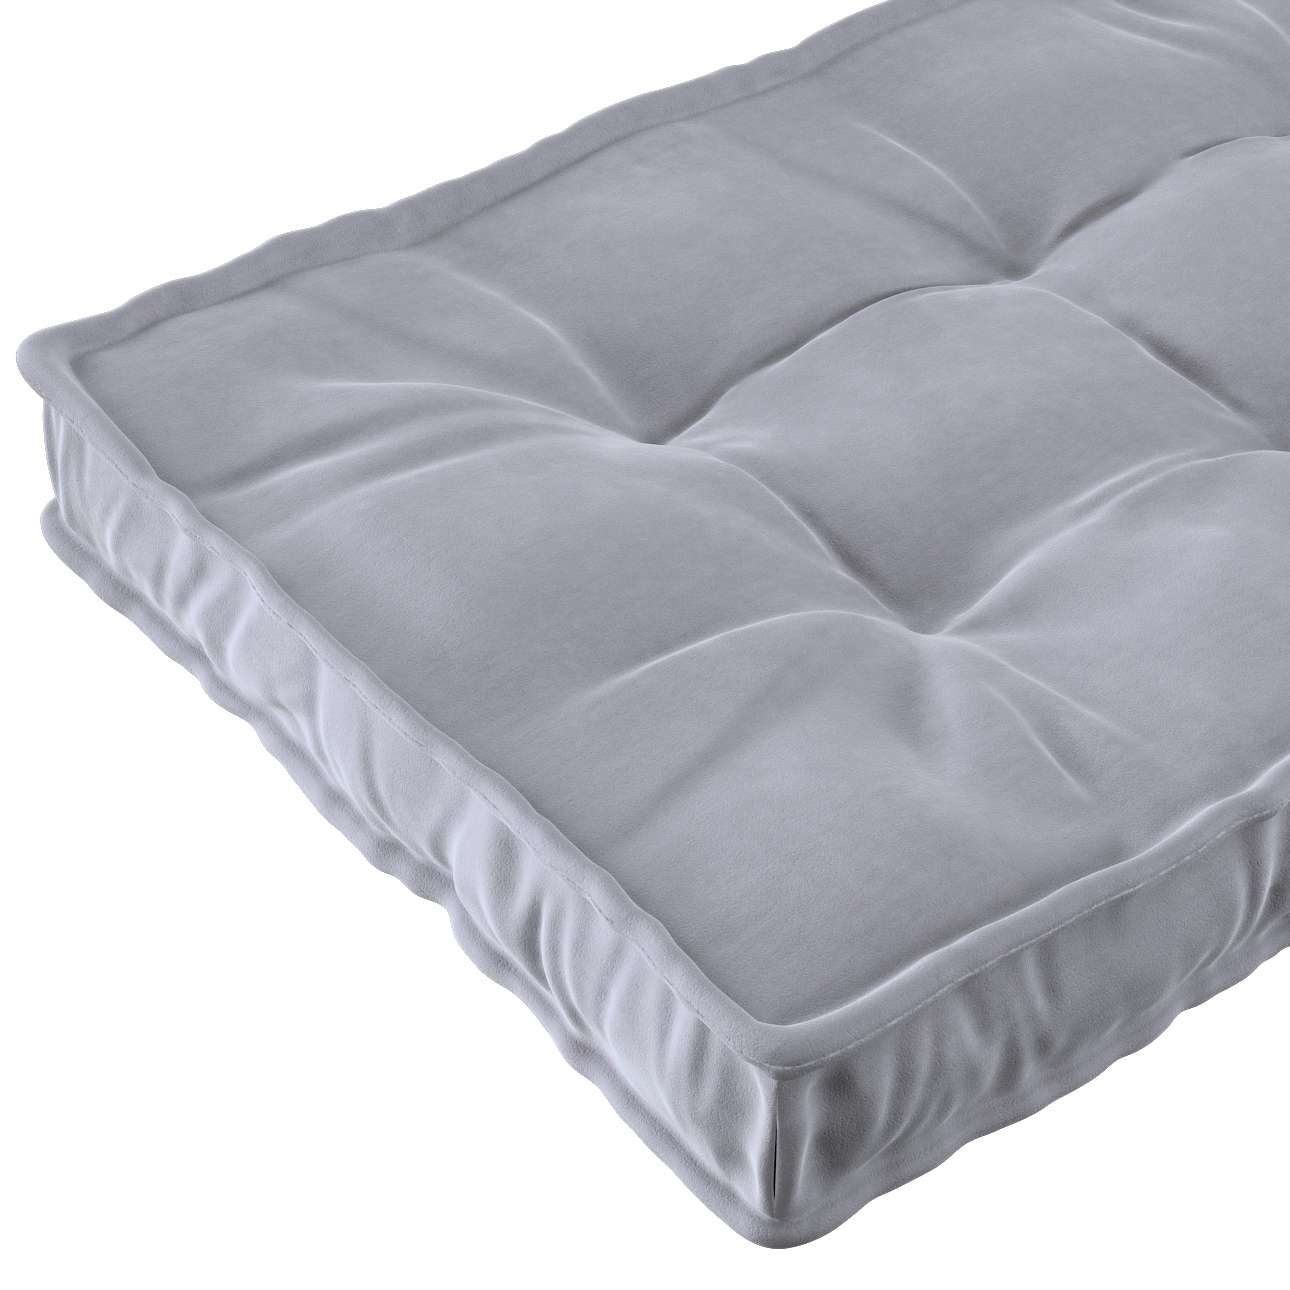 French mattress in collection Posh Velvet, fabric: 704-24